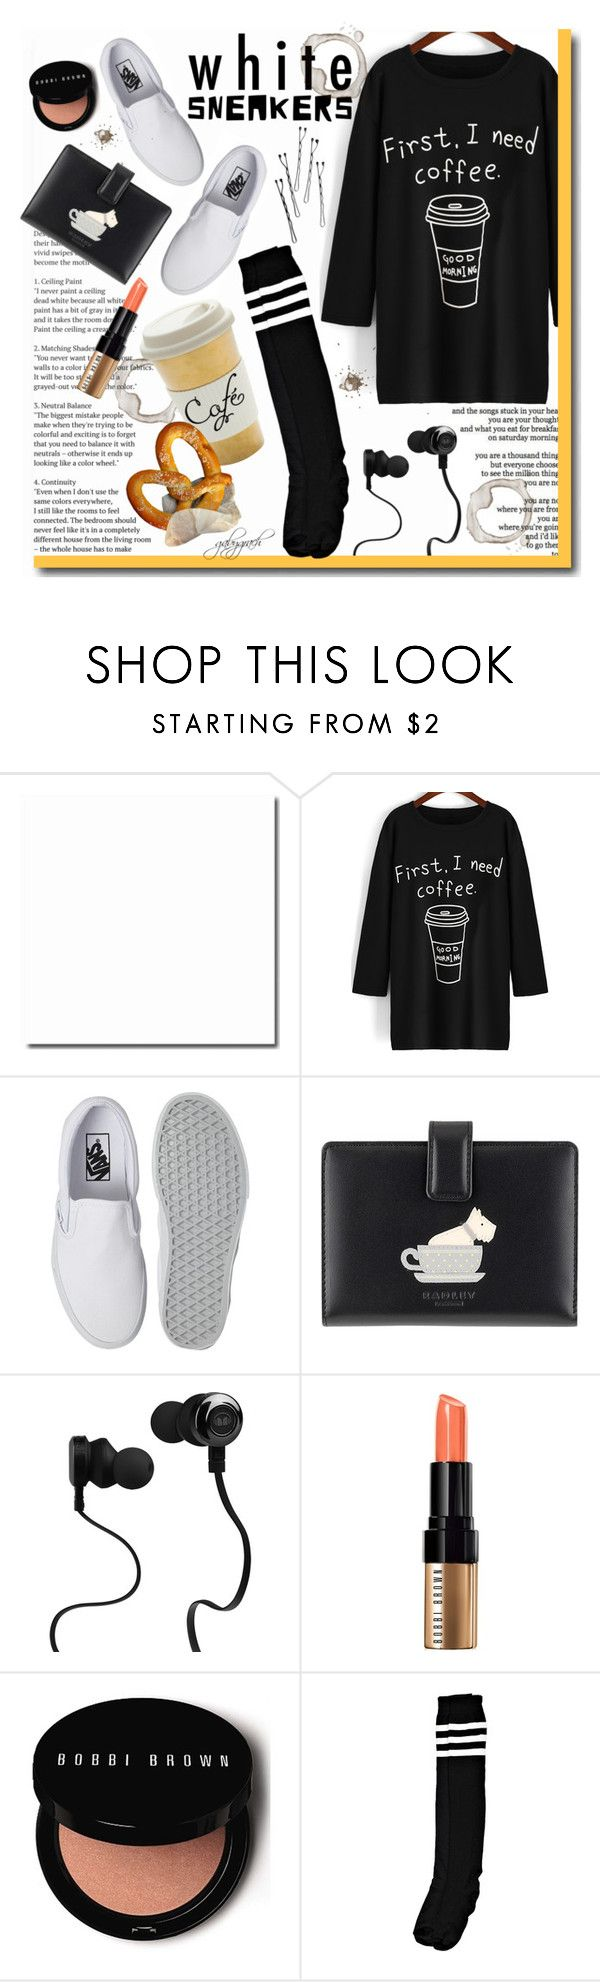 """""""Bright White Sneakers"""" by gabygrach ❤ liked on Polyvore featuring Vans, Rochas, Radley, Monster, Bobbi Brown Cosmetics, fashionset, polyvoreeditorial, polyvorecontest and whitesneakers"""